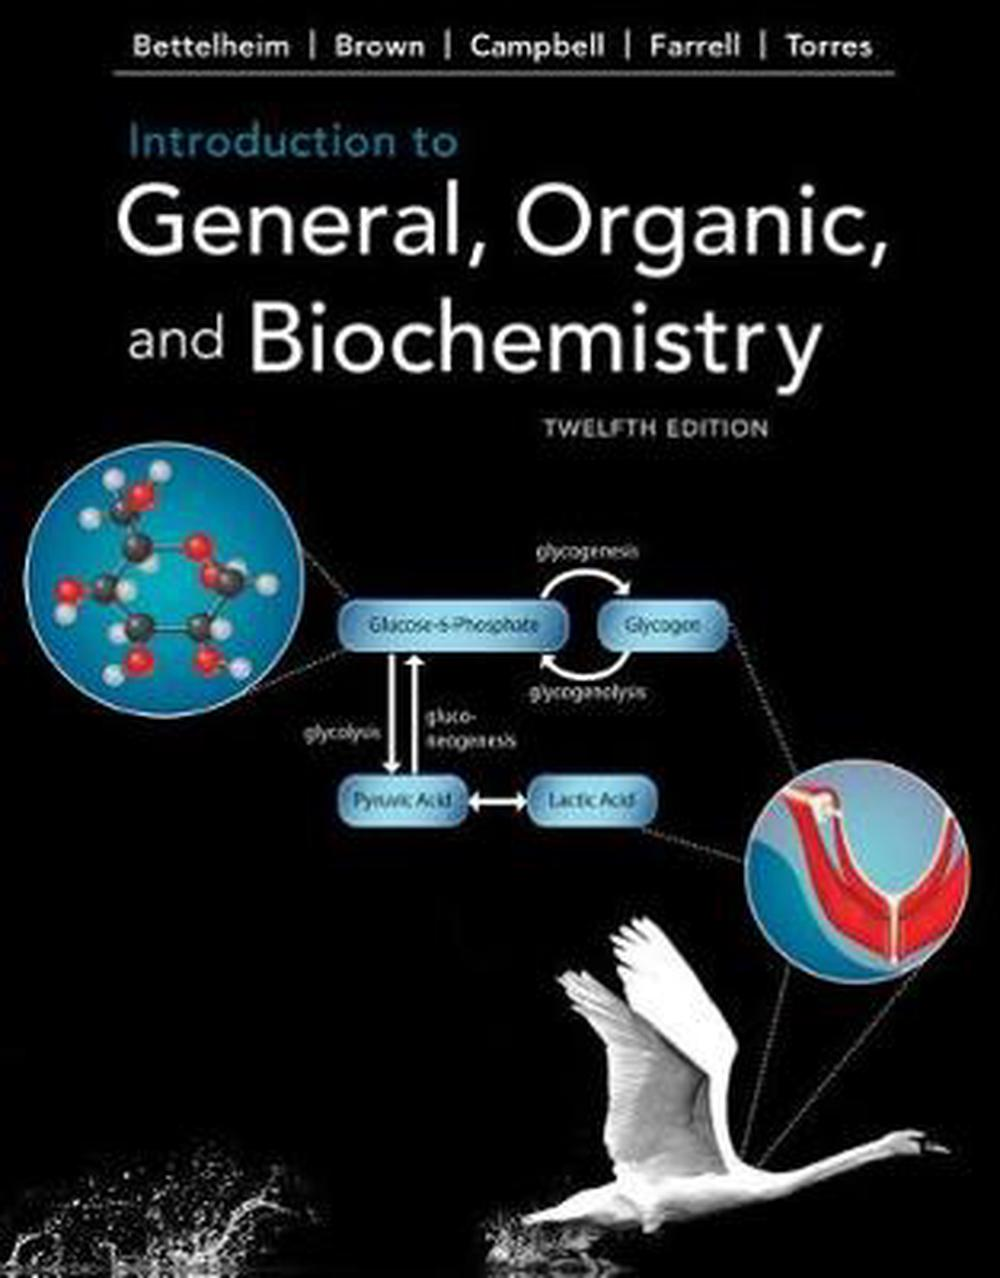 Introduction to General, Organic, and Biochemistry, 12th Edition